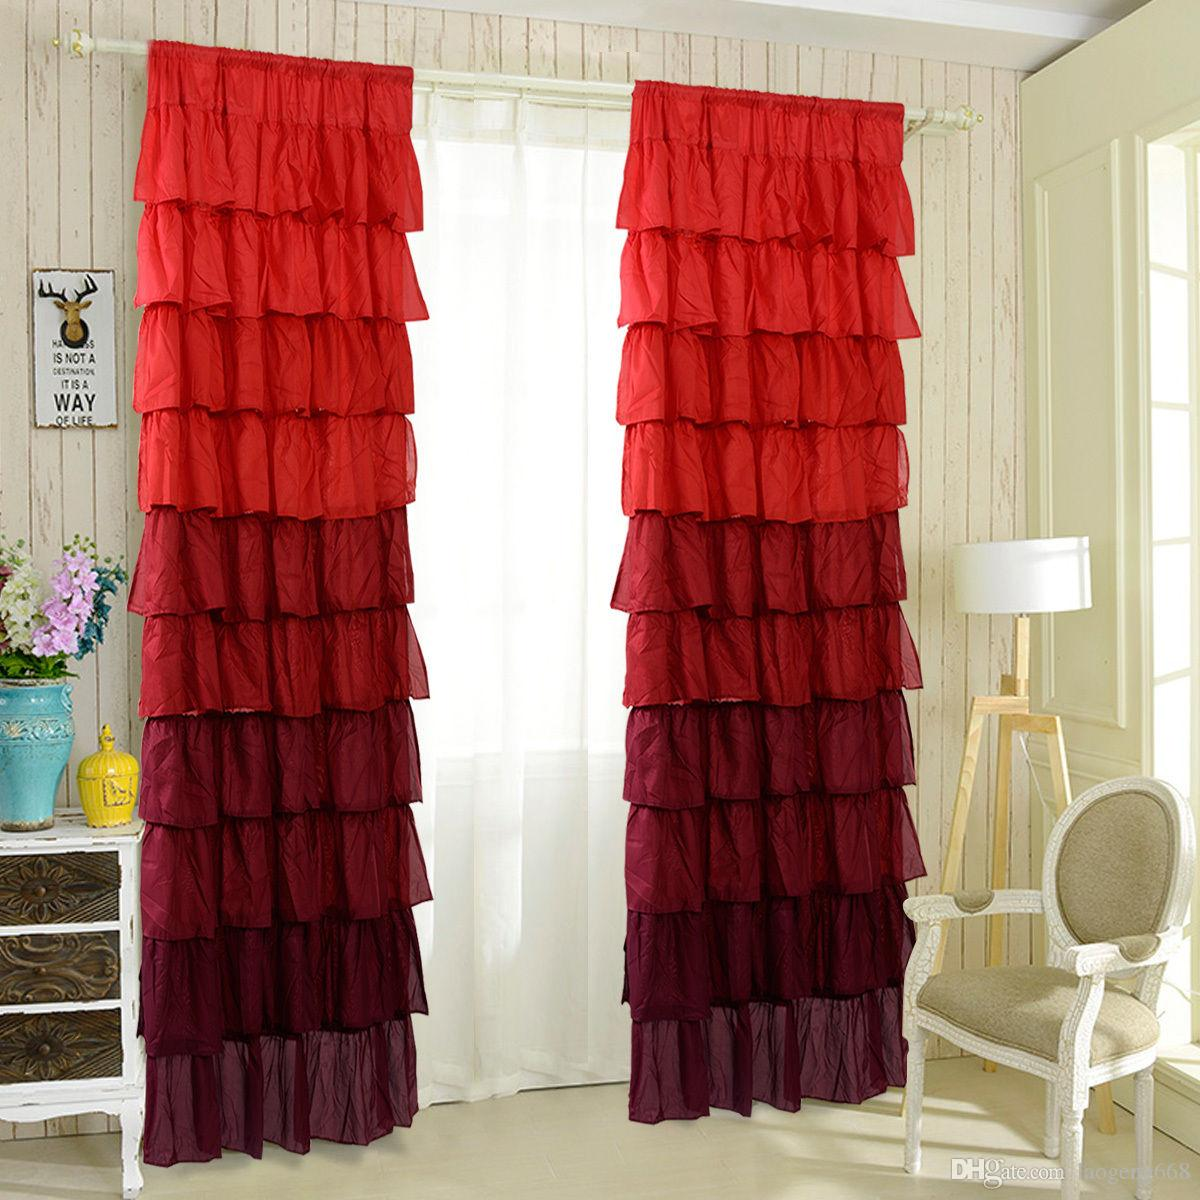 panels printed room intersect curtain sheer intersection pair liteout products